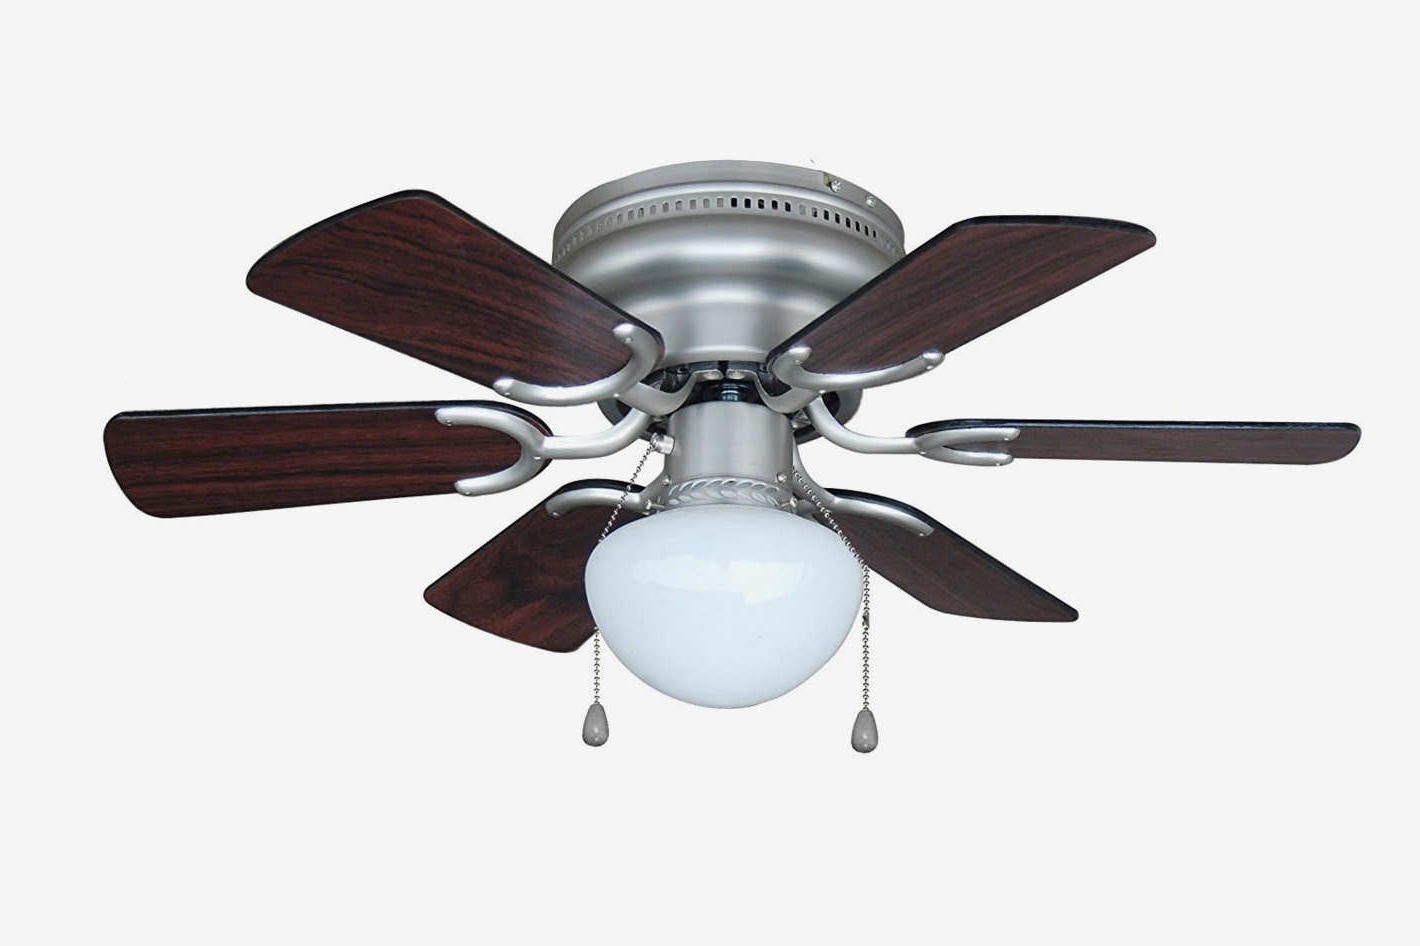 Most Recent The 9 Best Ceiling Fans On Amazon 2018 Regarding Outdoor Ceiling Fans Under $ (View 7 of 20)